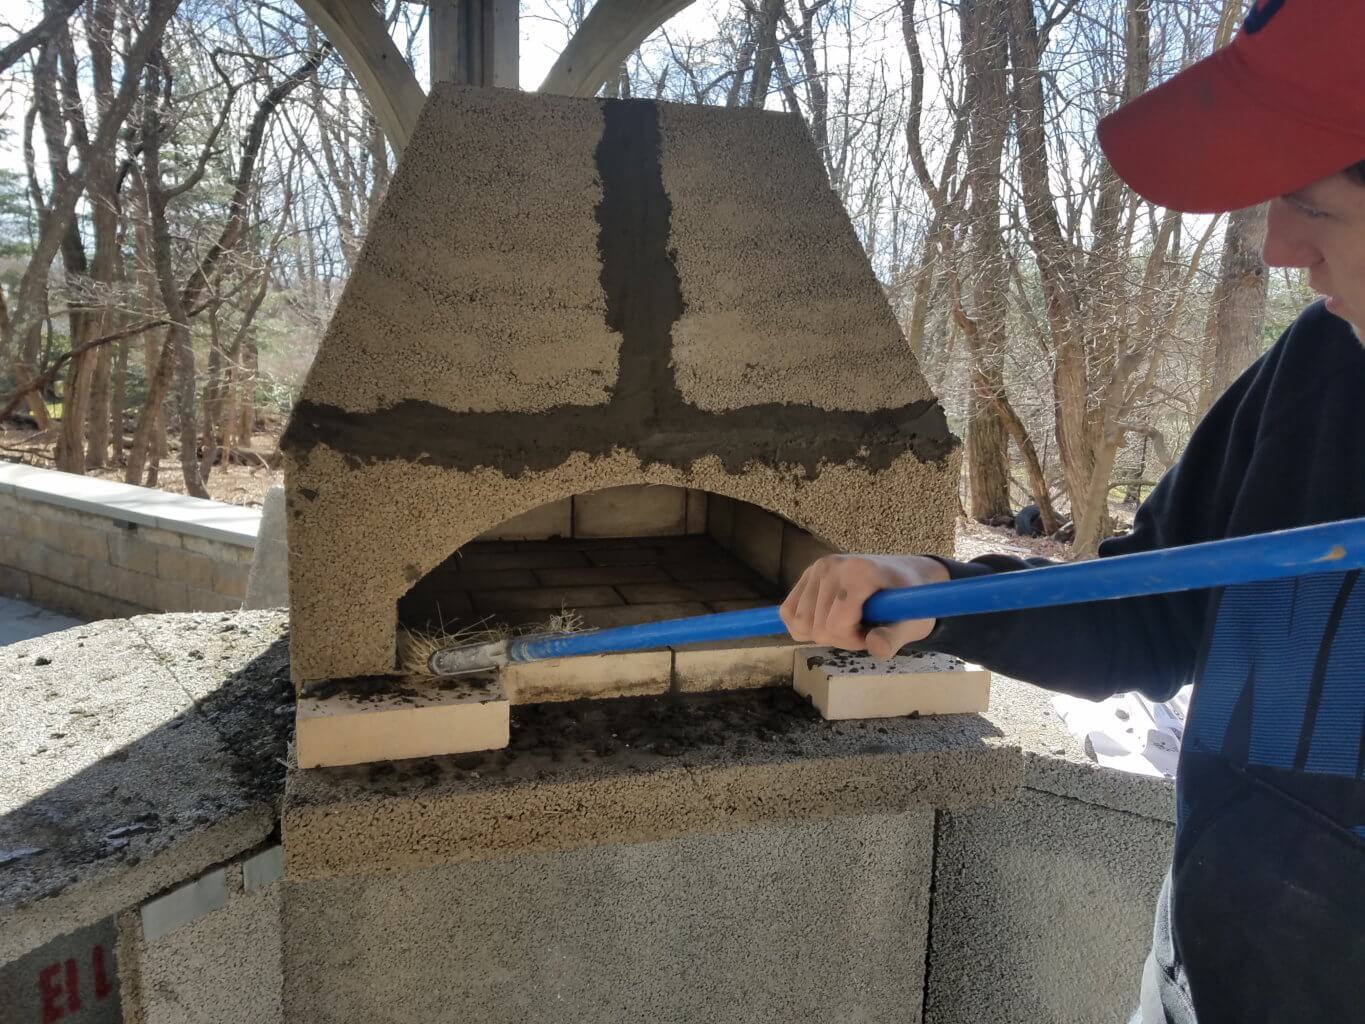 Outdoor pizza oven kit, installation in ct (Connecticut), outdoor living